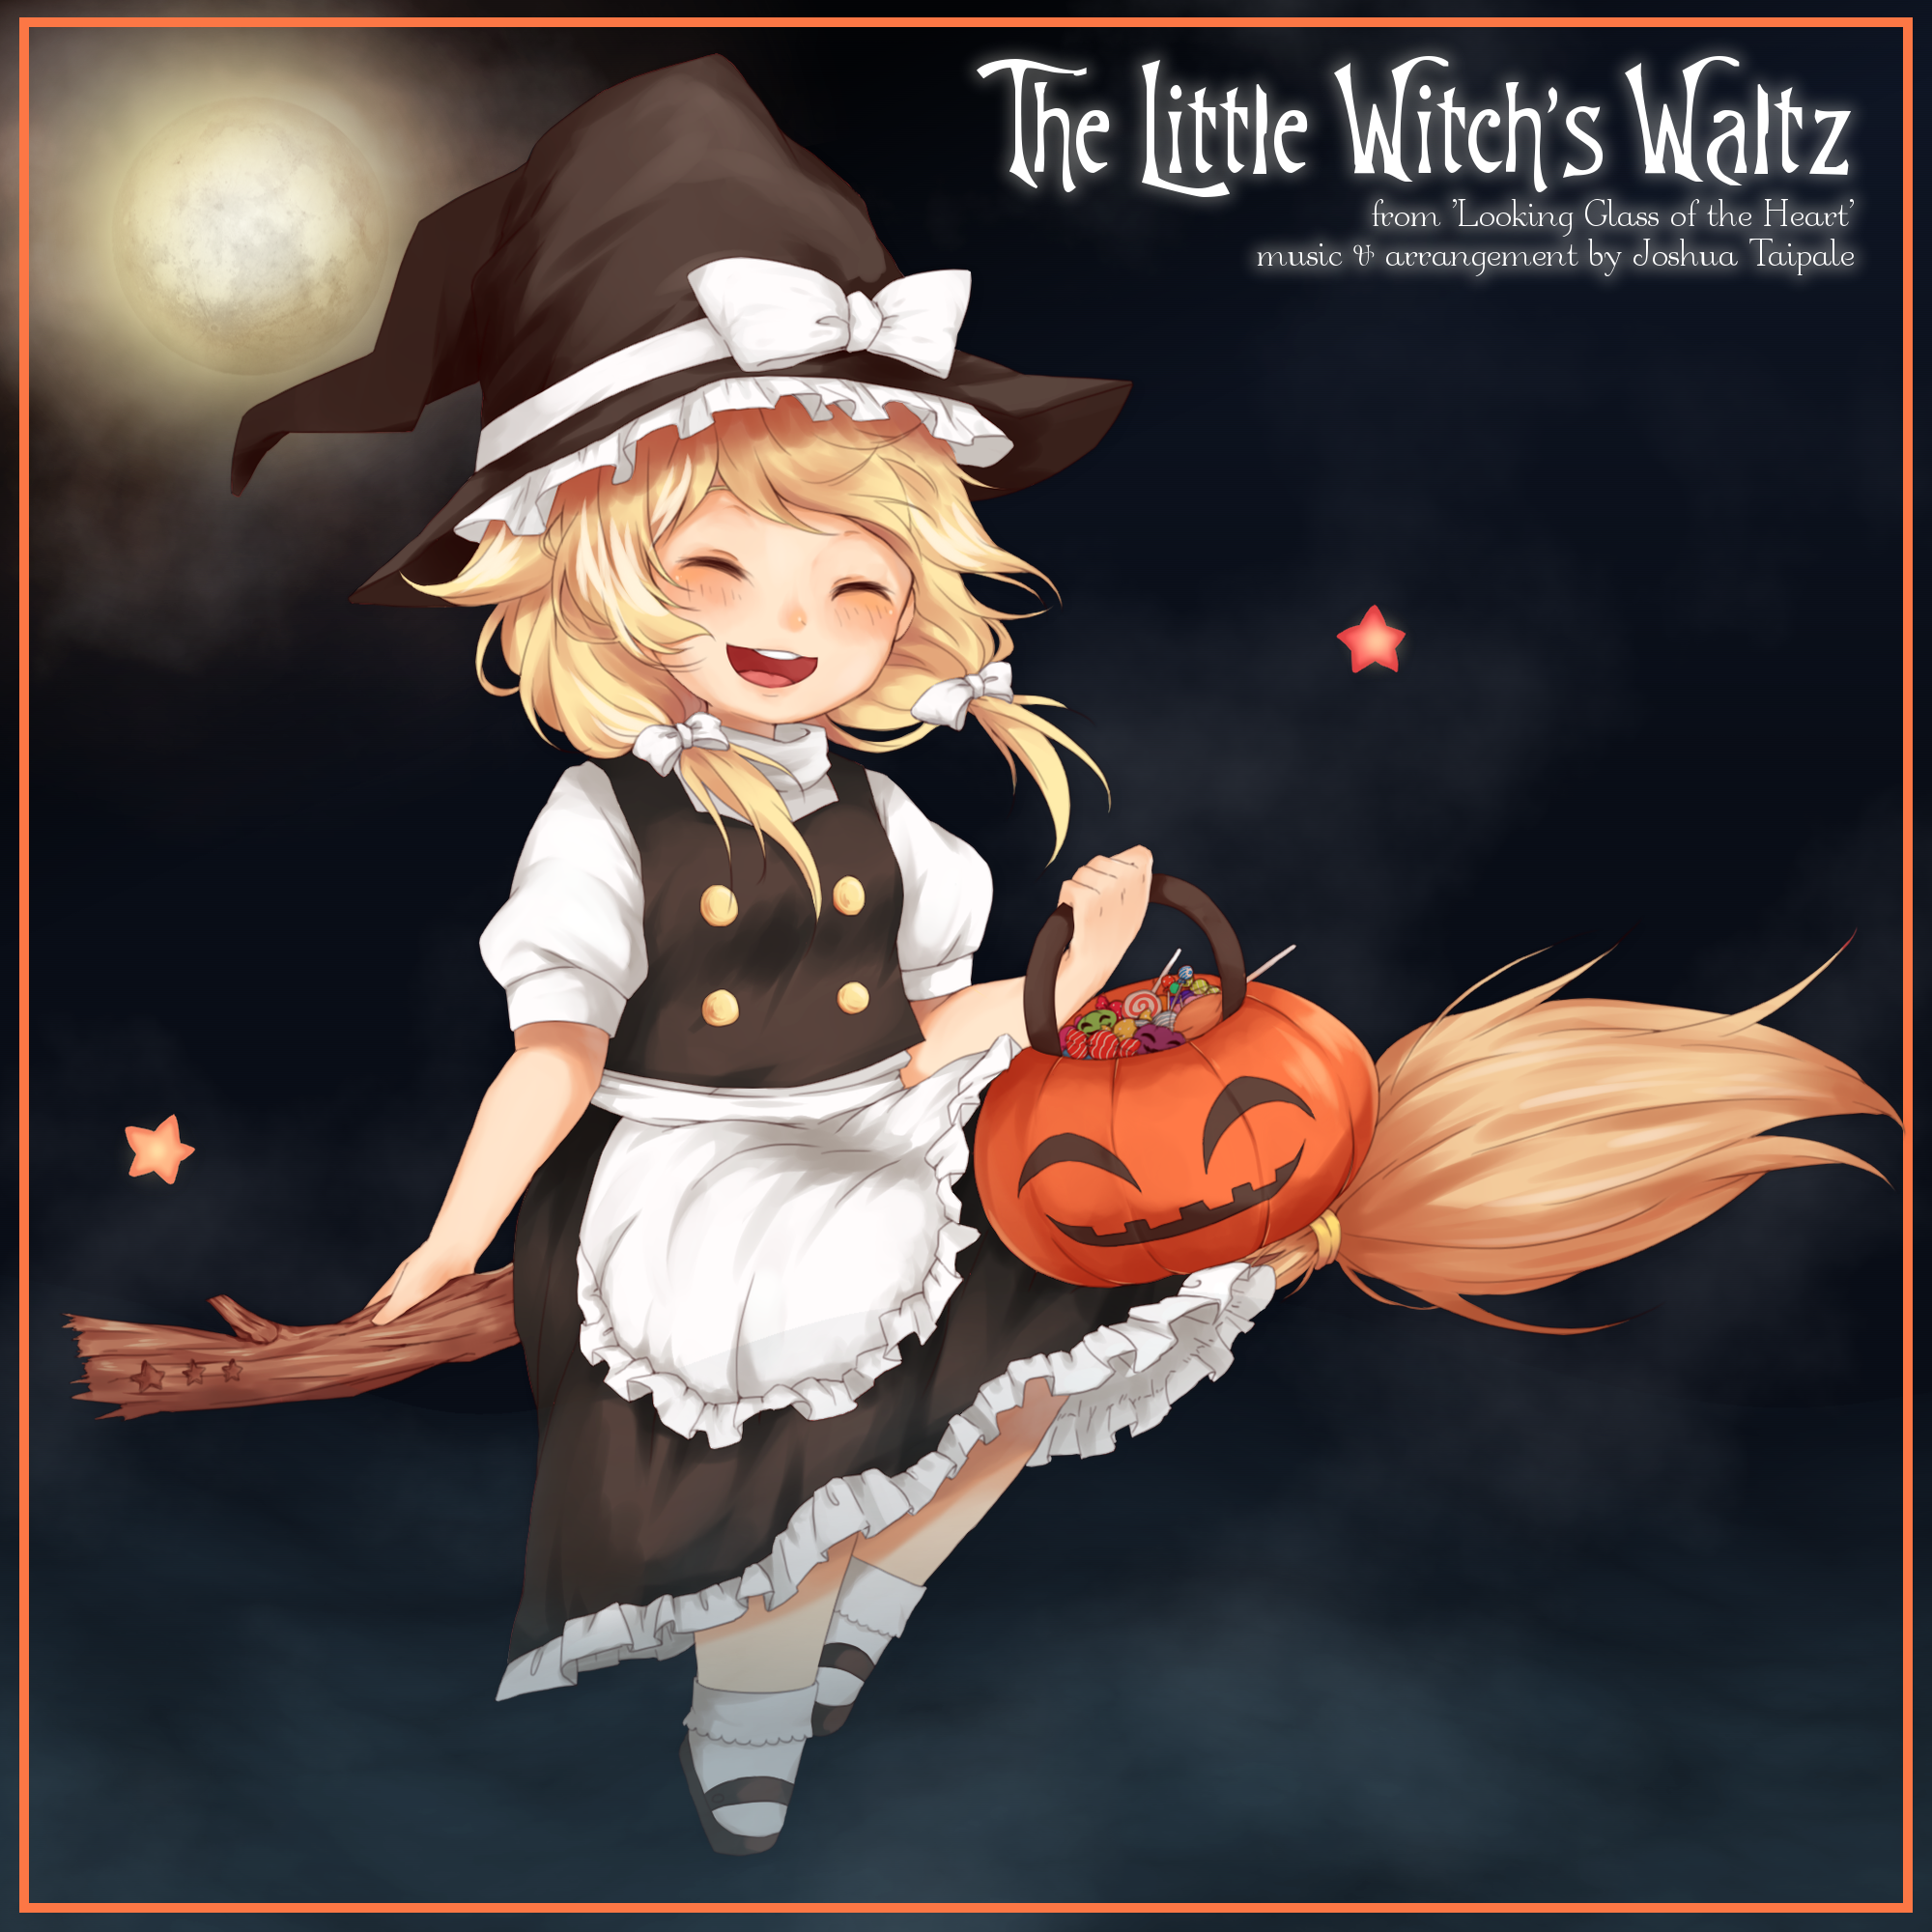 The Little Witch's Waltz